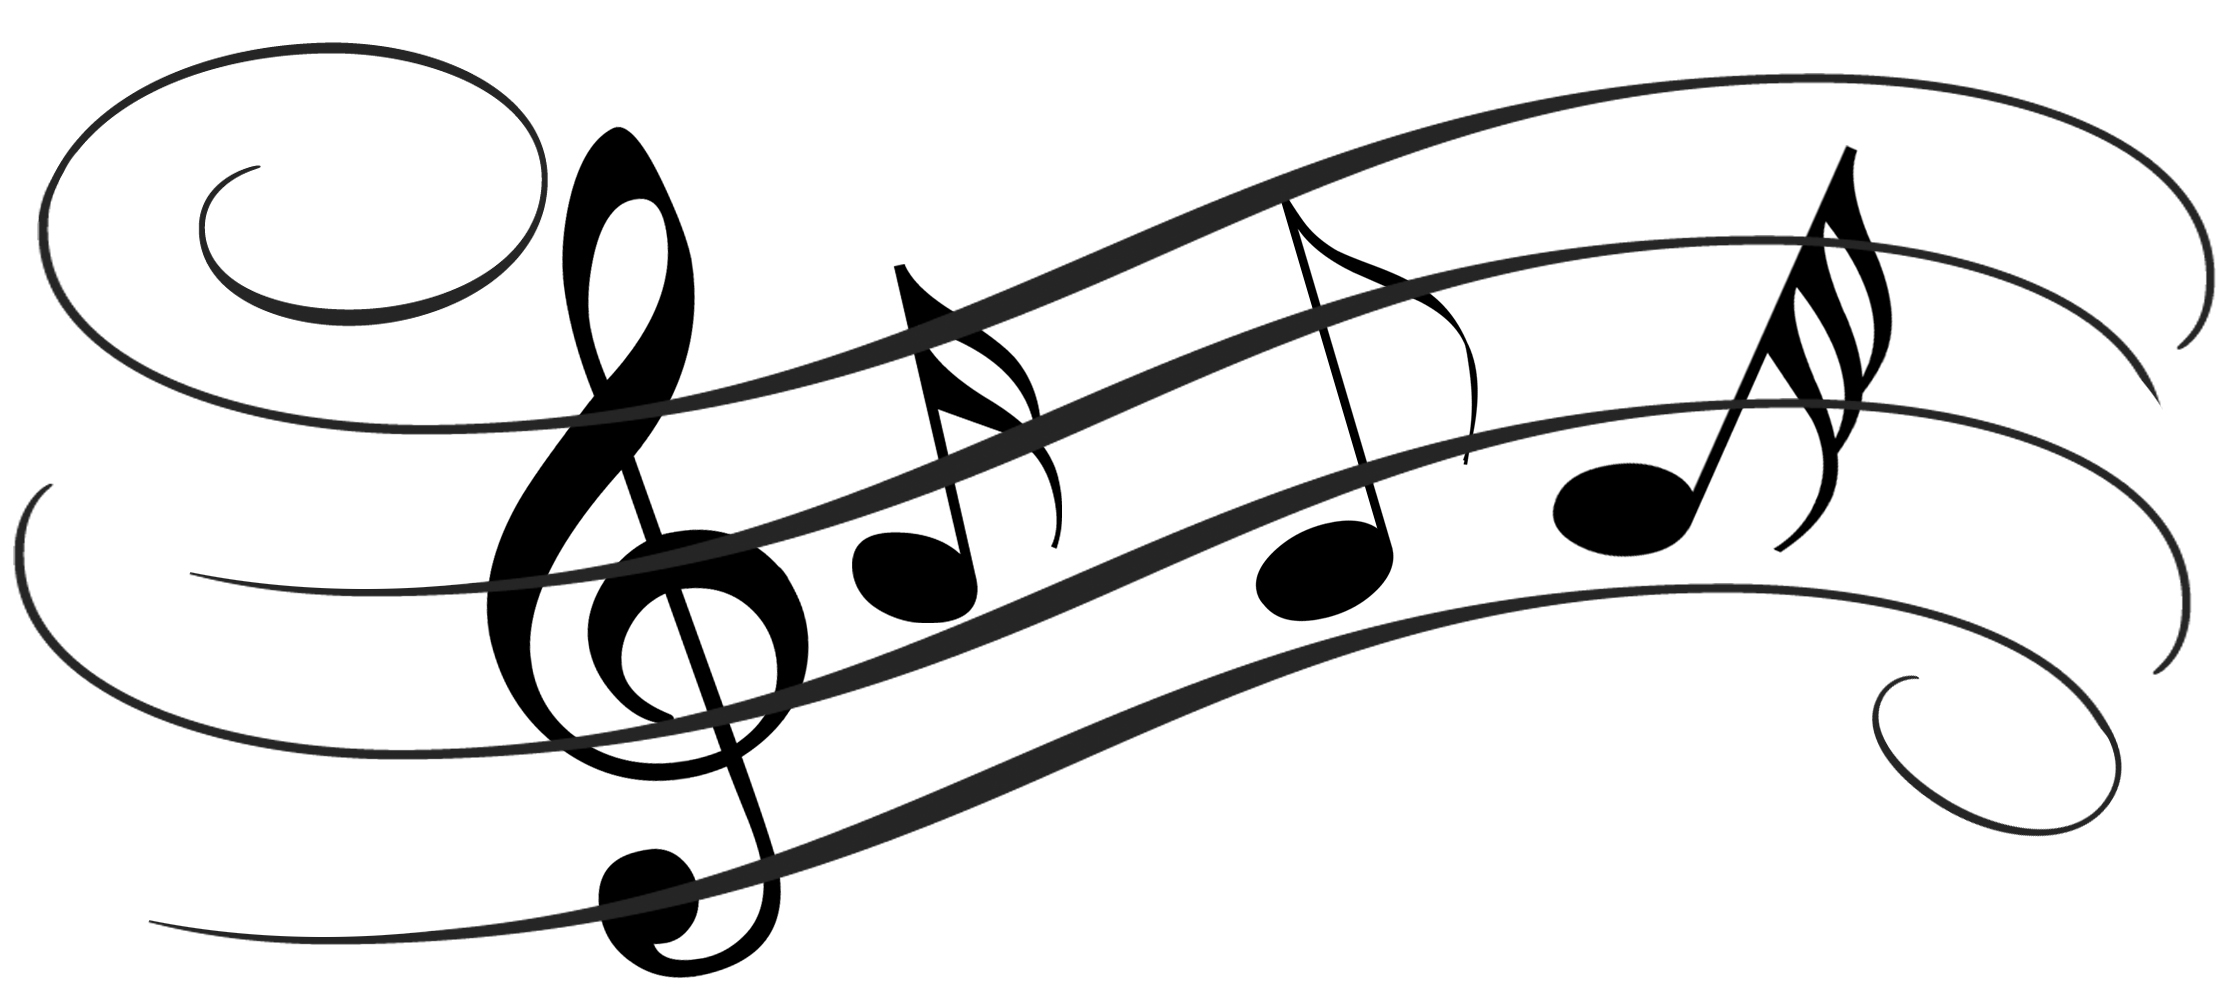 Special music clipart clip art freeuse library Music notes clip art free clipart images 4 - Cliparting.com clip art freeuse library